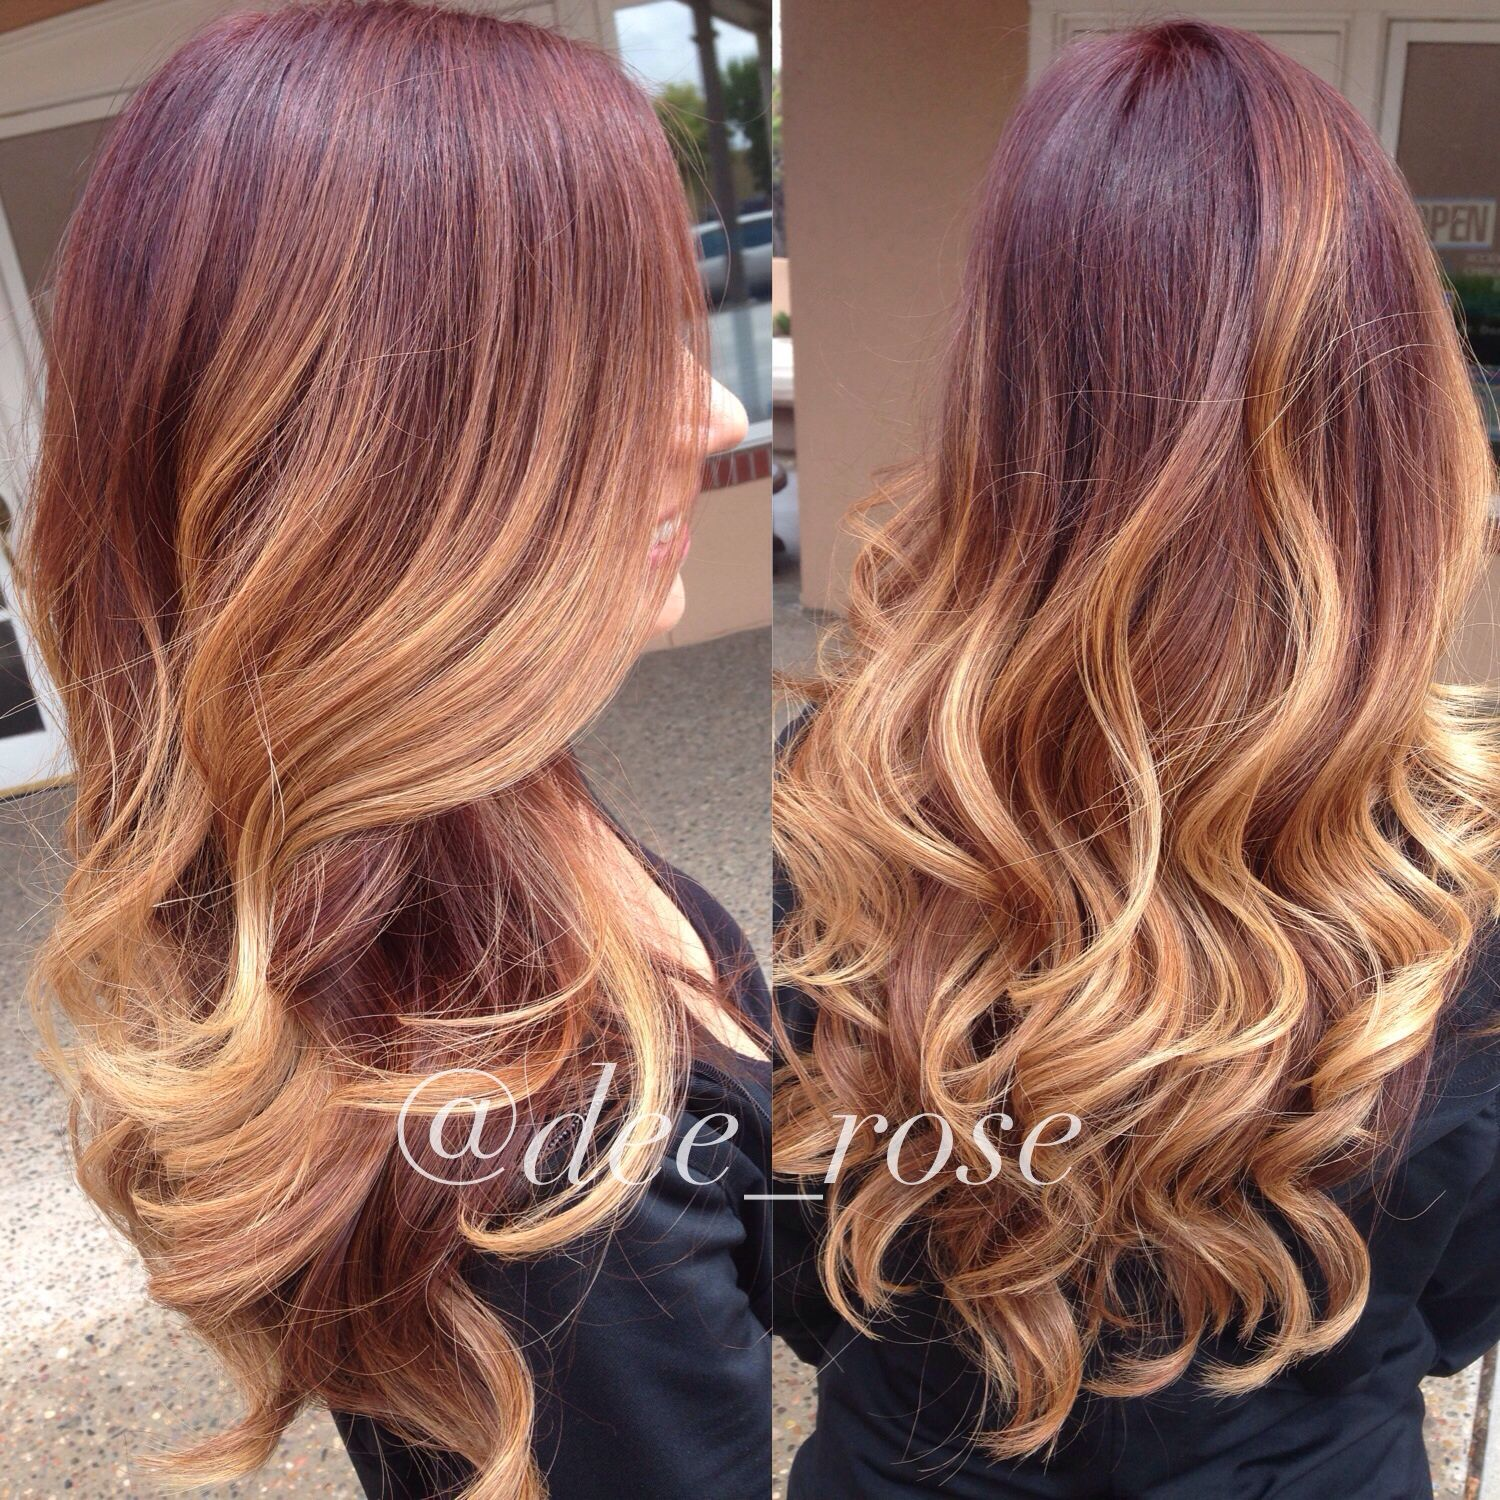 Fall Inspired Color Melt Red Ombre Red Violet Undertone Melted To A Honey Blonde Blonde Hair Color Color Melting Hair Ombre Hair Blonde